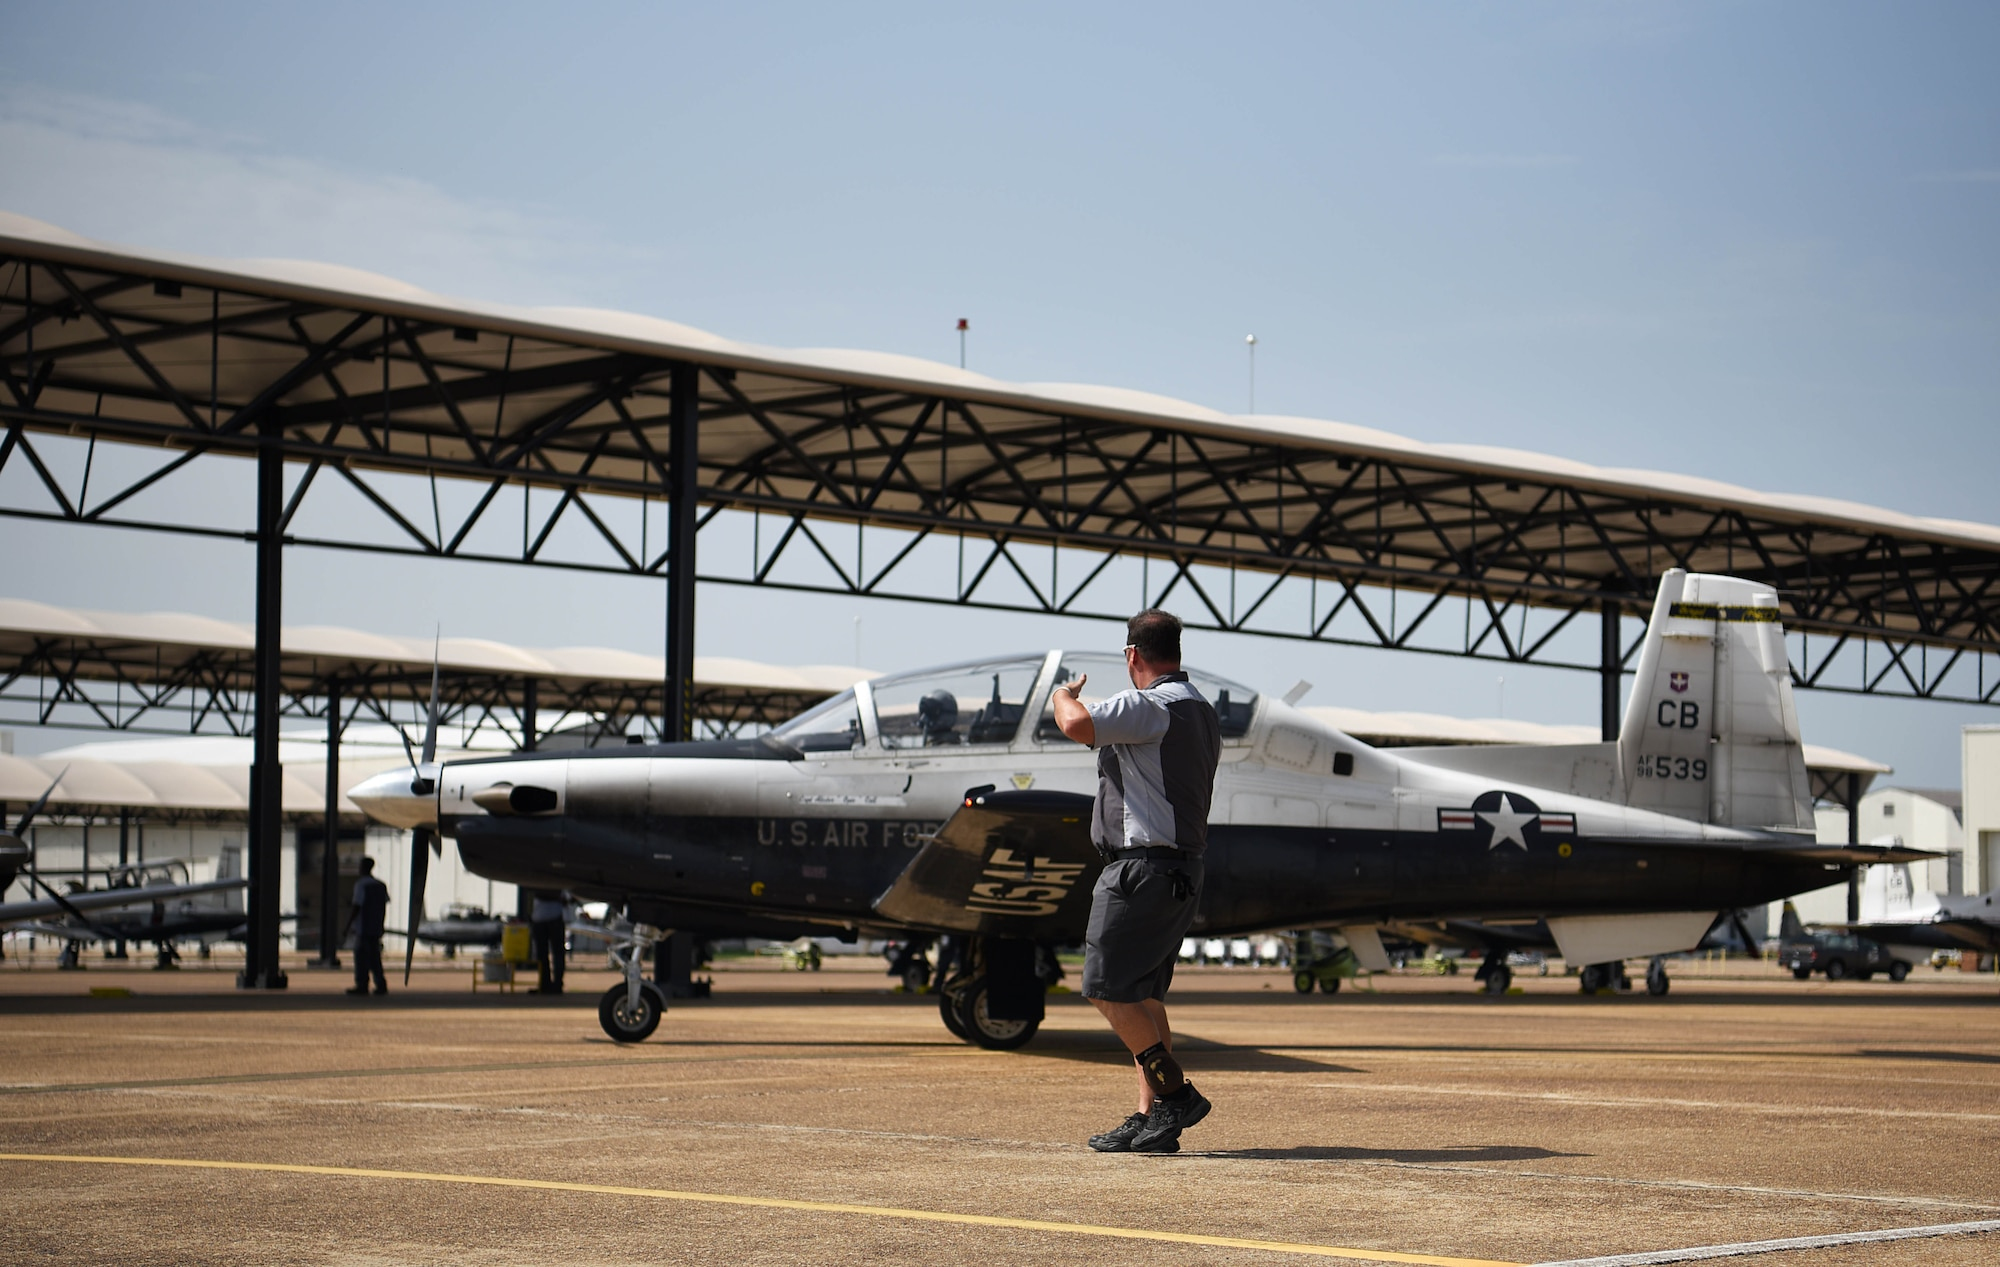 A T-6 Texan II taxis for takeoff July 2, 2018, at Columbus Air Force Base, Miss. The Air Force is looking at ways to procure hardware upgrades like the enhanced OBOGS faster and smarter, increase basic science and research, and collect and apply new research data into acquisitions standards in order to properly address the broader issue of physiological events that cuts across all manned aviation. (U.S. Air Force photo by Airman 1st Class Keith Holcomb)